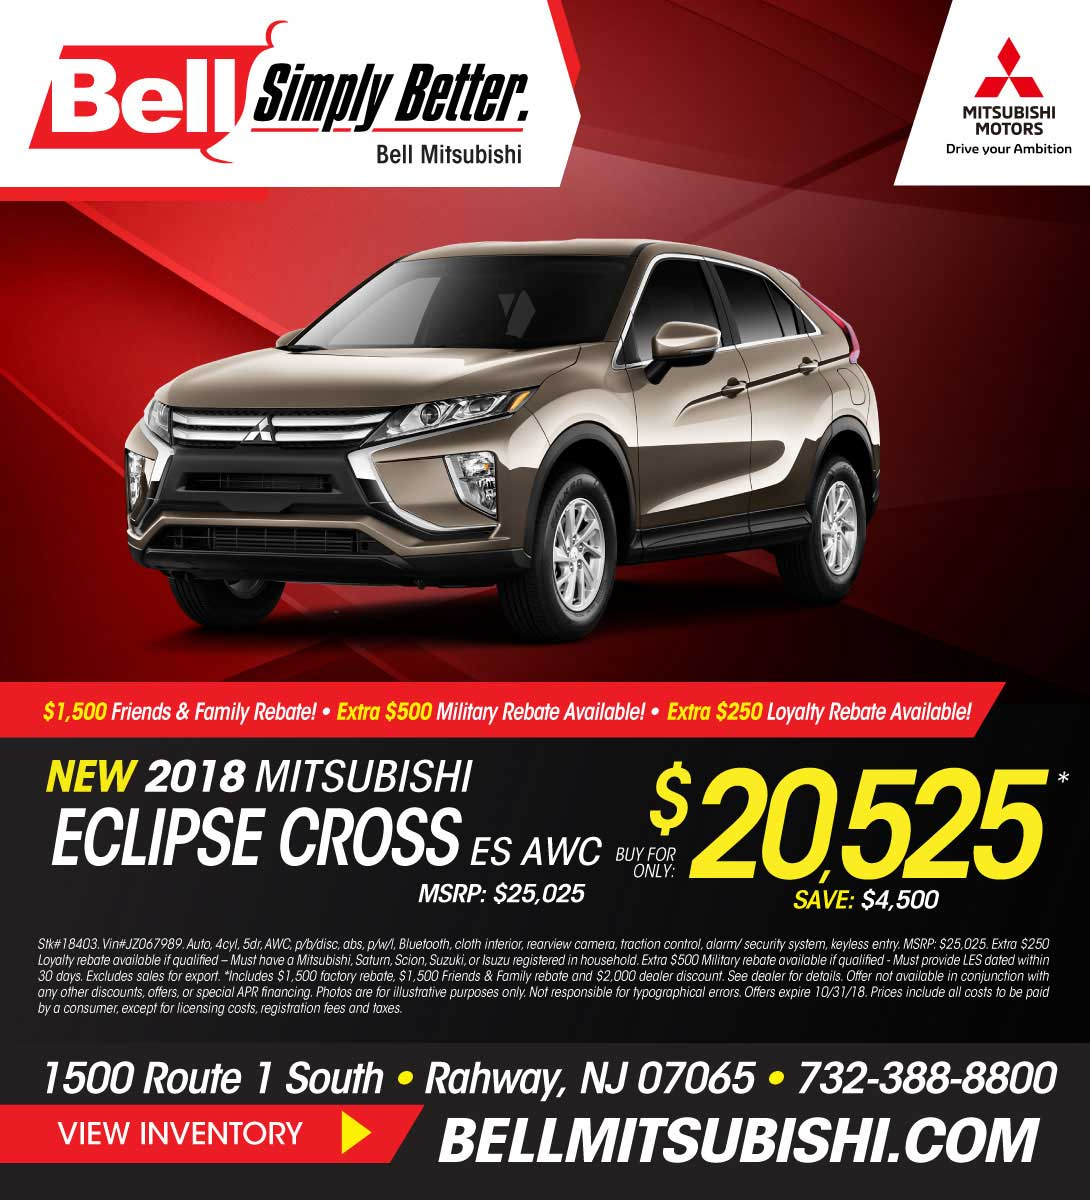 BLM-507-Landing-Pages_2018-eclipse-cross-es_Buy.jpg